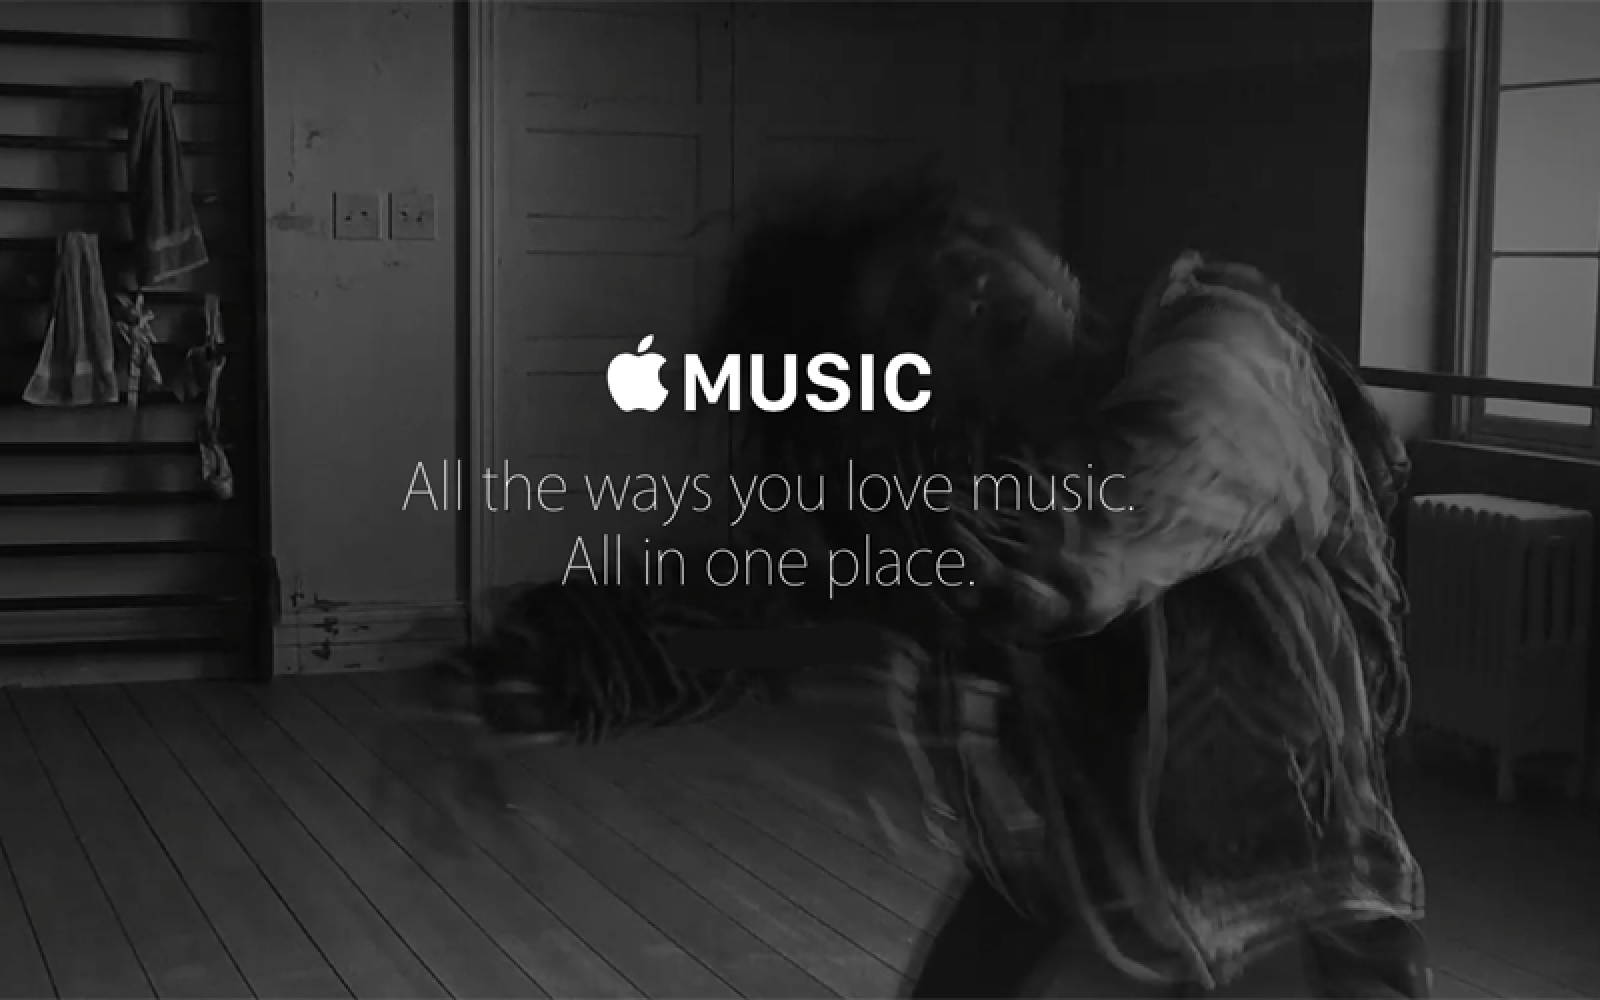 Opinion: Will the launch of Apple Music mark the beginning of the end for Spotify?